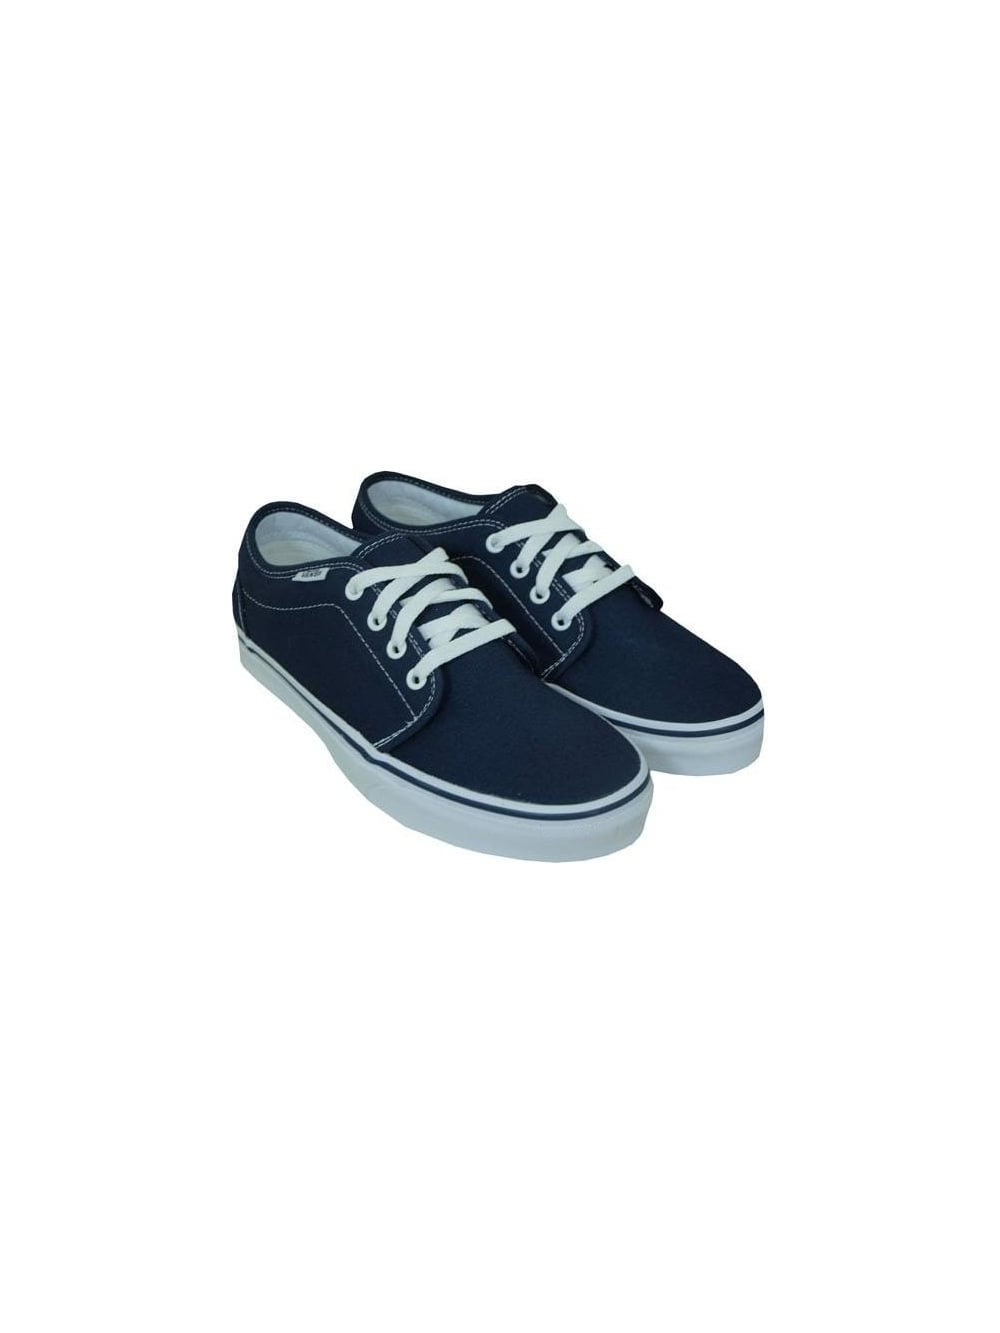 91a32fb9aa0f50 Vans 106 Vulcanized in Navy - Shop Vans at Northern Threads